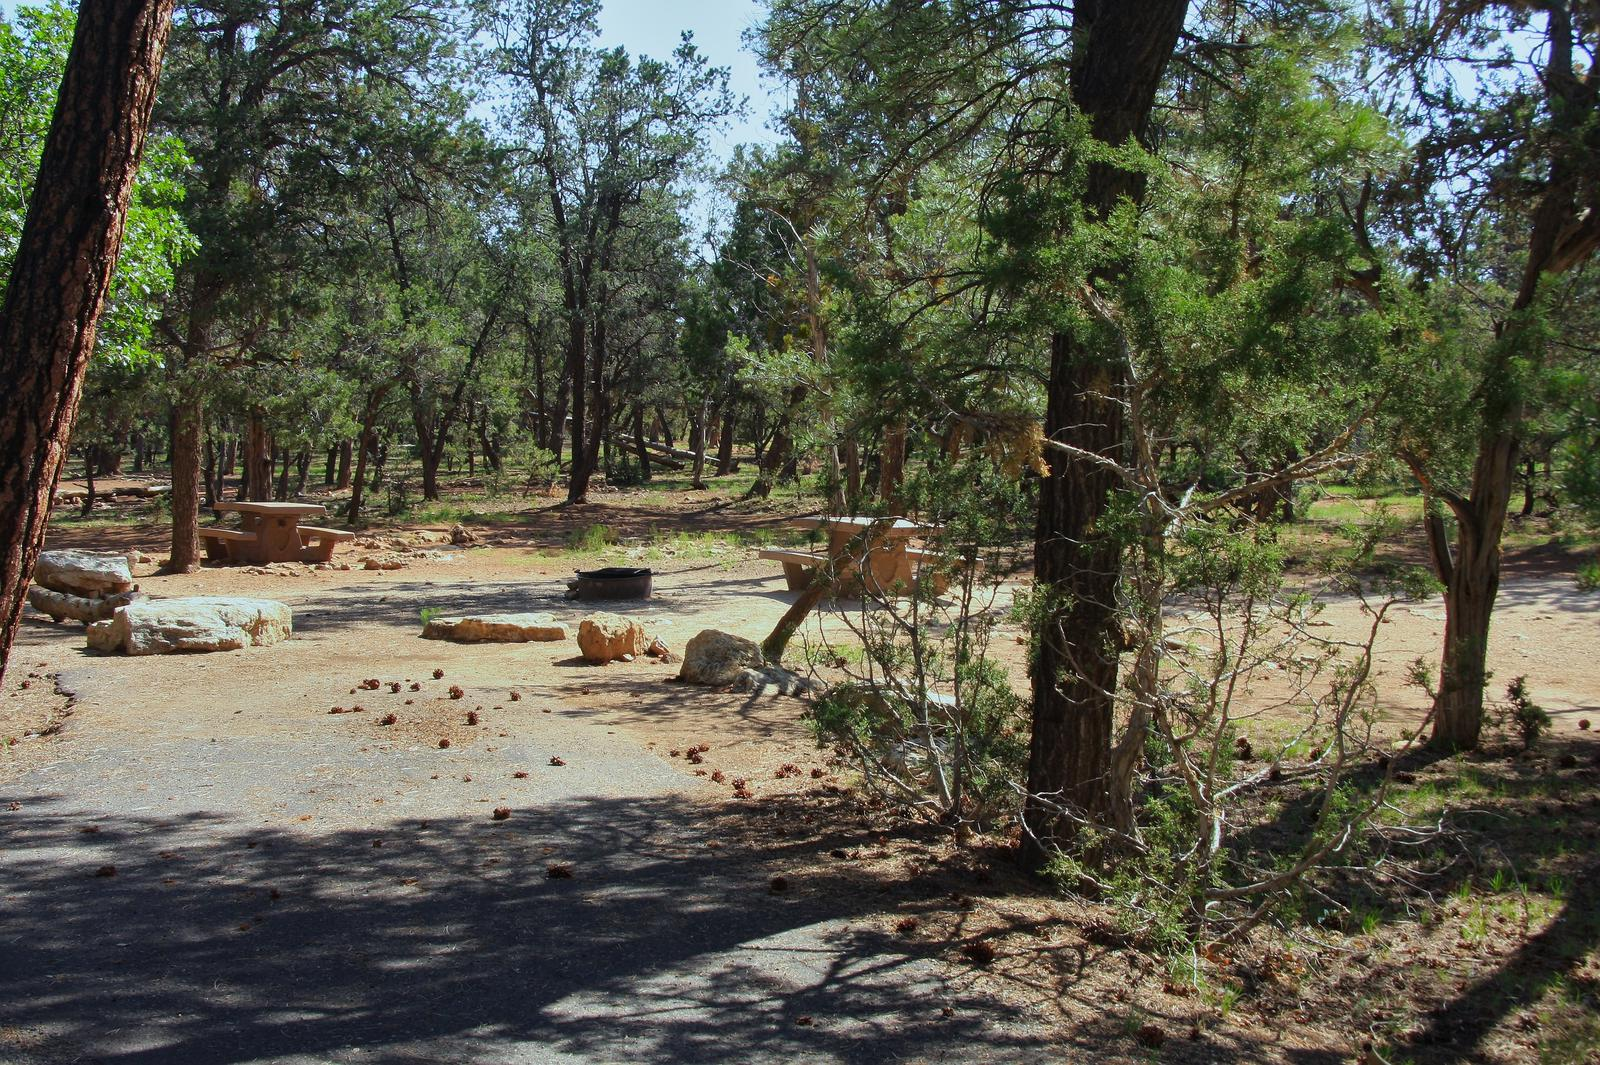 Picnic table, fire pit, and park spot, Mather CampgroundPicnic table, fire pit, and park spot for Oak Loop 246, Mather Campground